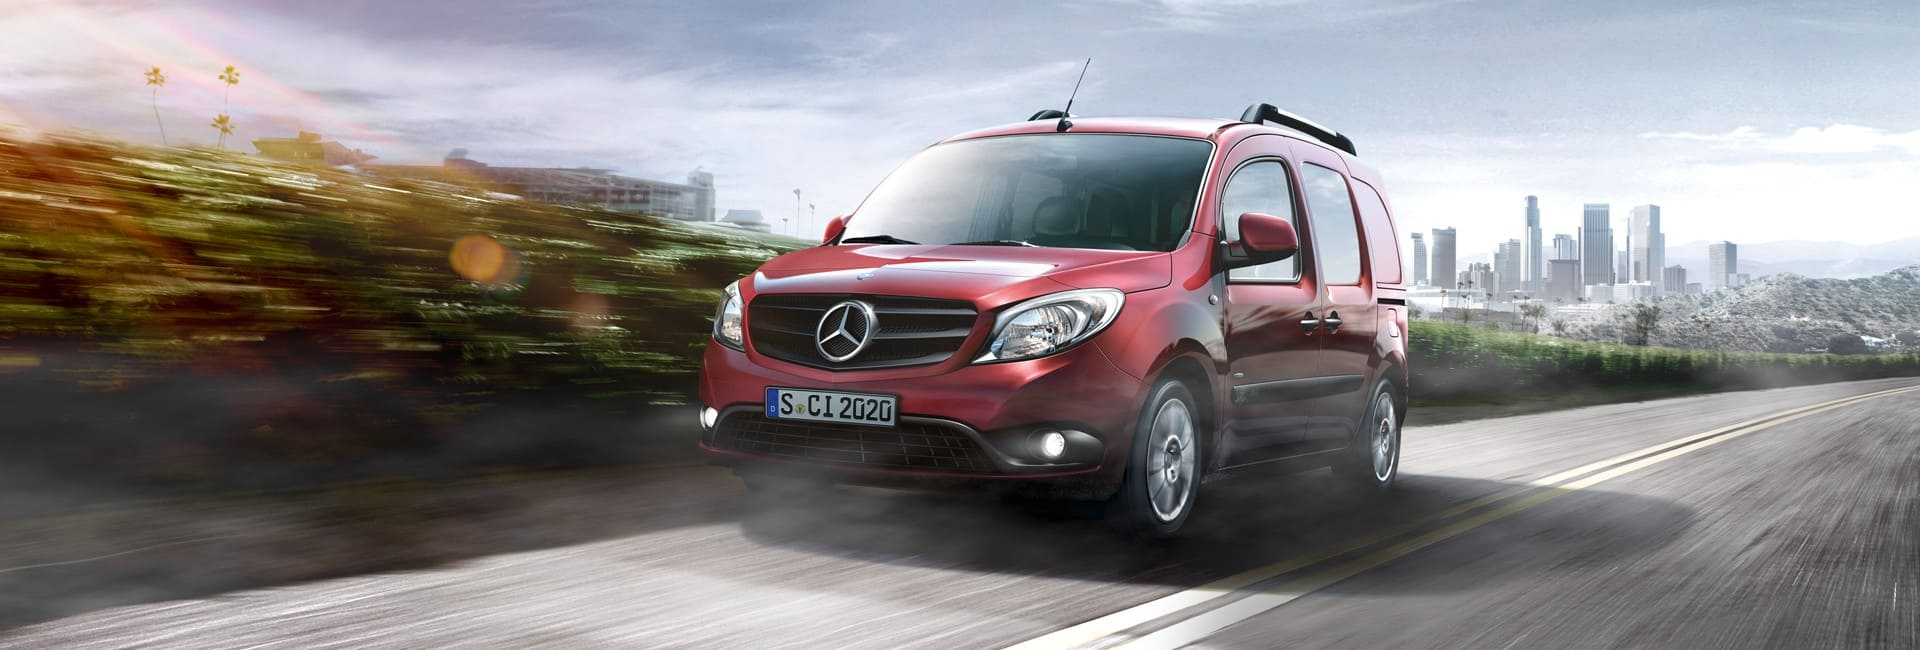 Mercedes auvity rouge utilitaire